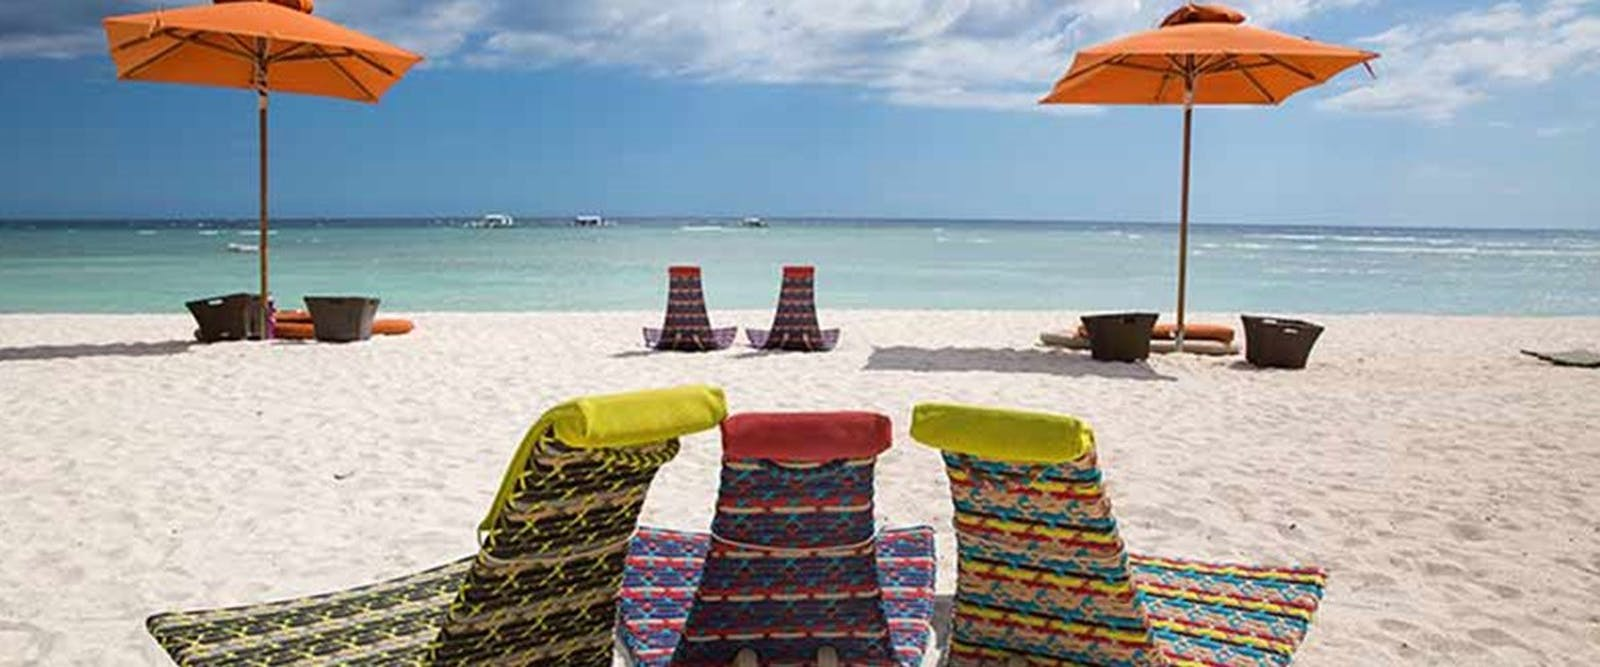 Relax on the beach at South Palms Resort, Bohol, Philippenes